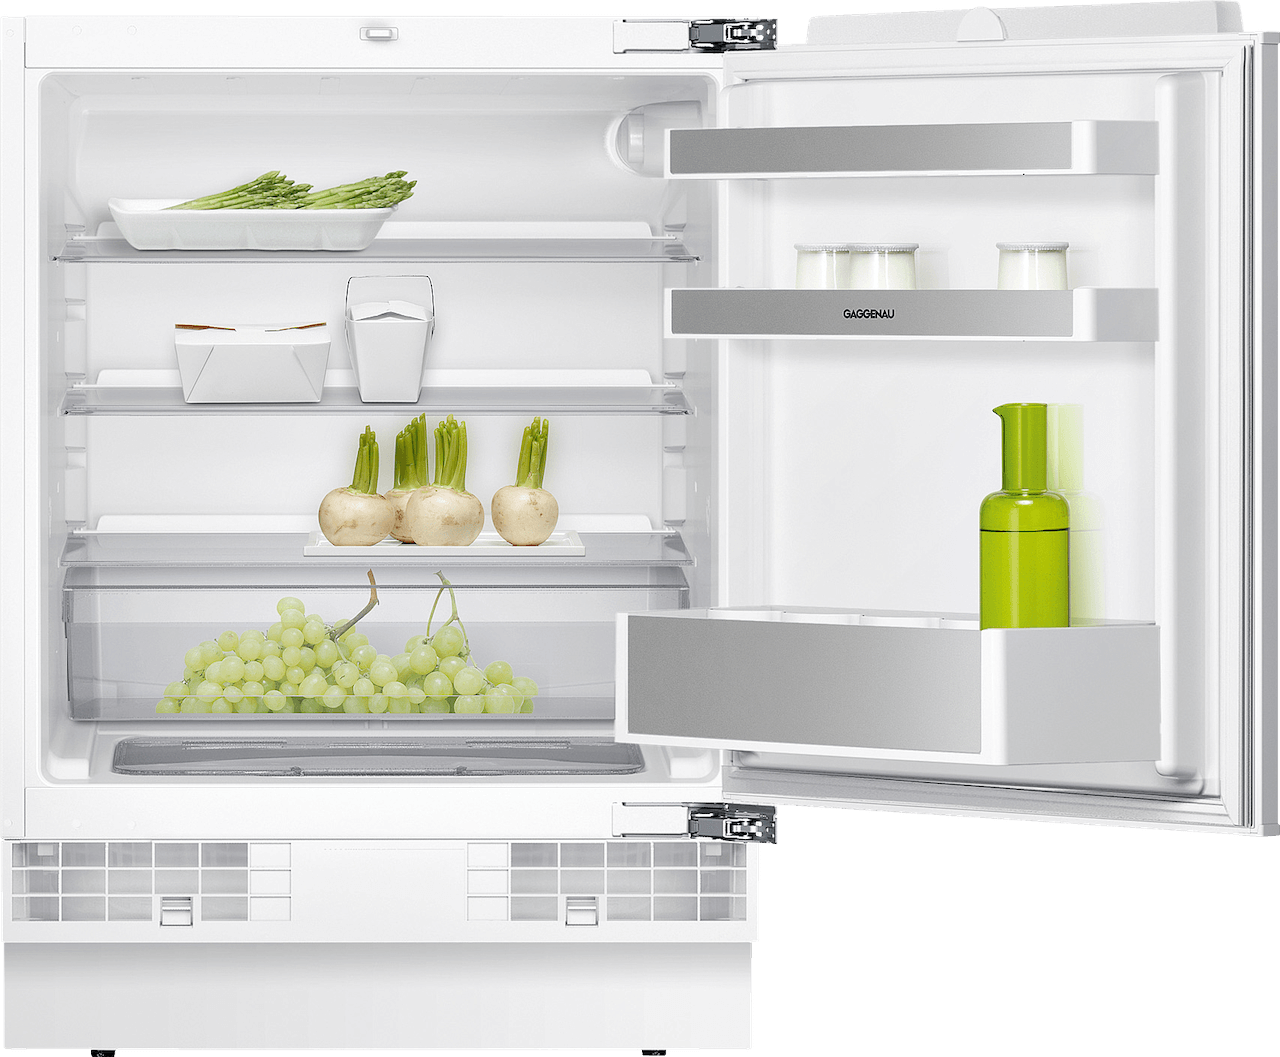 Refrigerator 200 series fully integrated, under-counter Niche width 60 cm, Niche height 82 cm RC200203